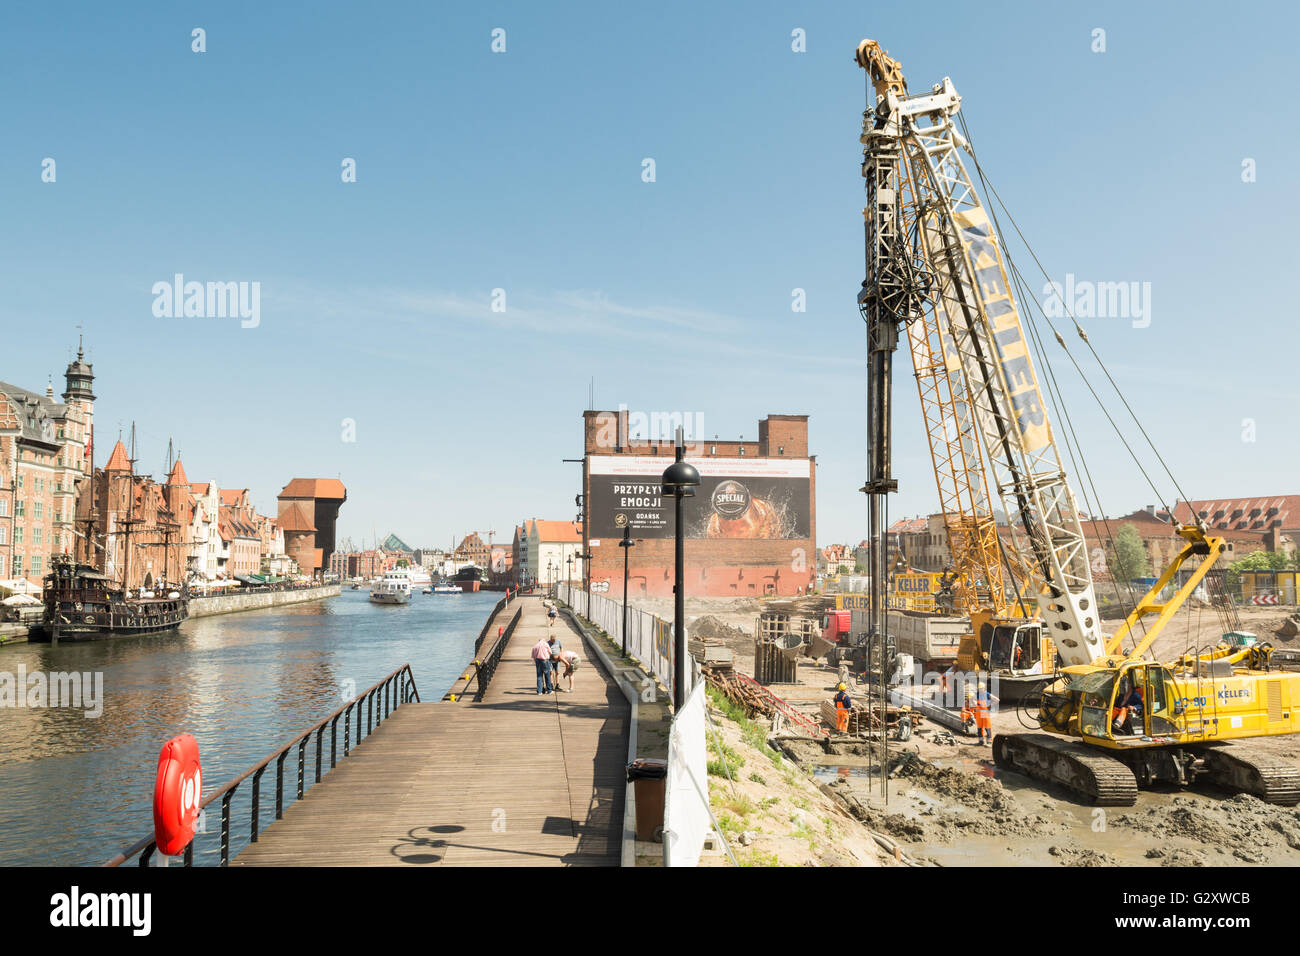 Construction workers on construction site on Granary Island,  Gdansk, Poland, Europe - Stock Image